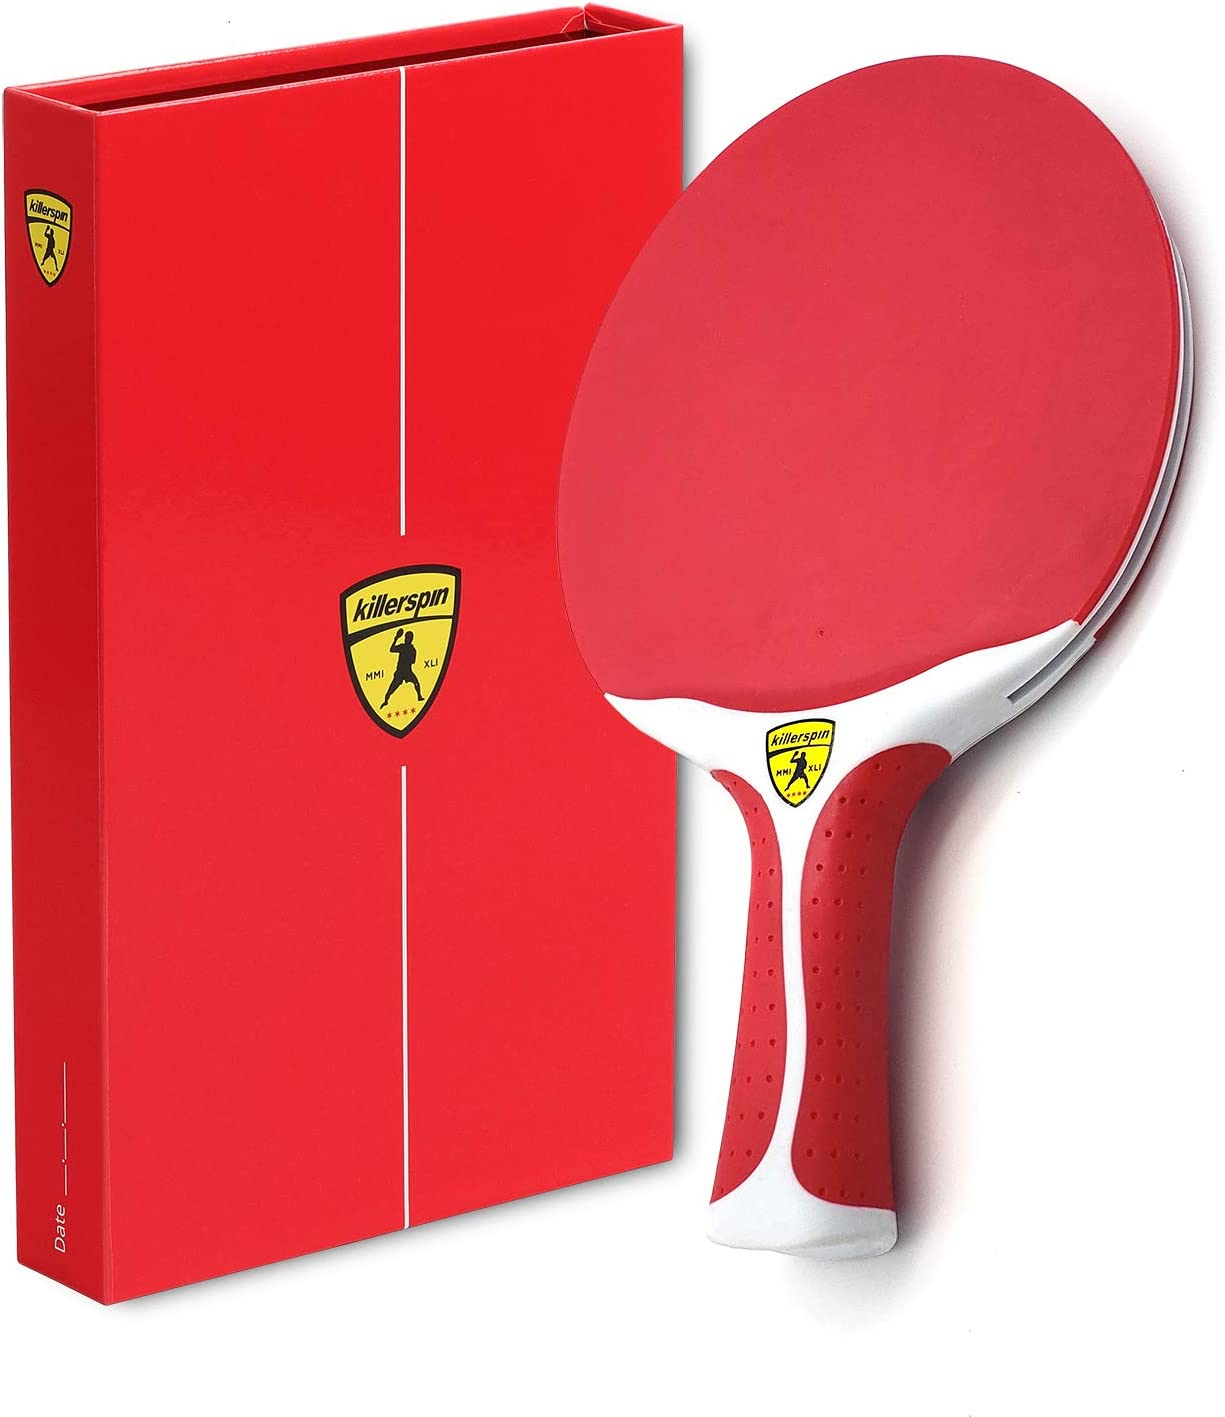 Killerspin Canvas Cherry Swirl 2021new shipping free Tennis Max 40% OFF Table Racket